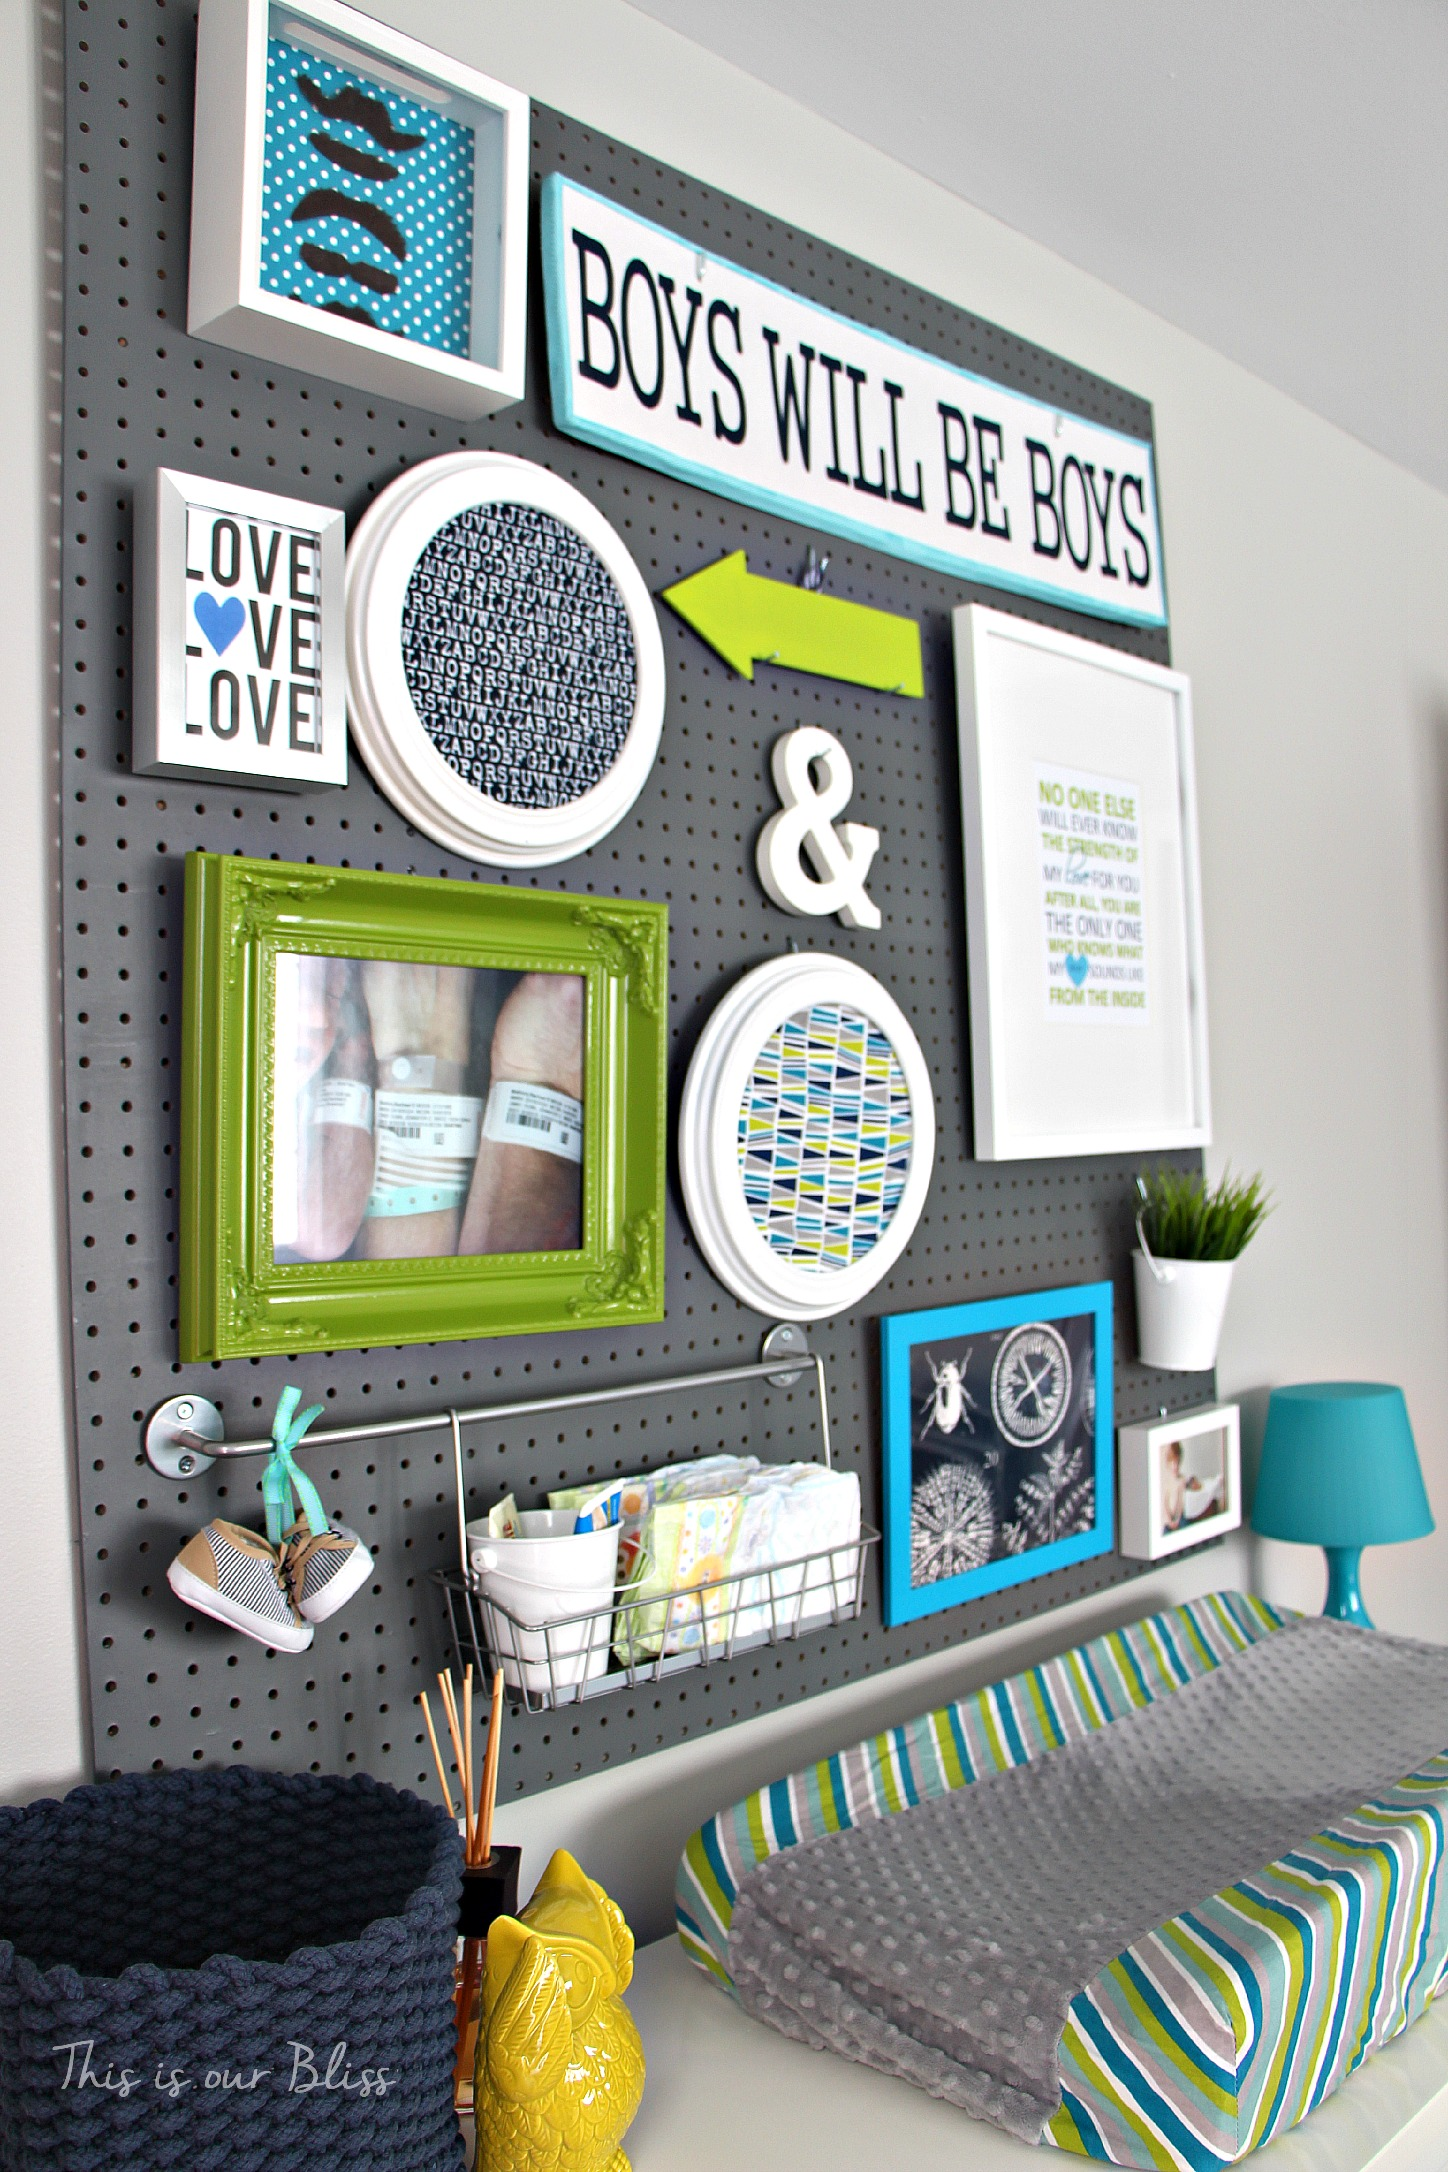 Little boy nursery pegboard gallery wall – DIY nursery decor – navy green & gray – This is our Bliss 3